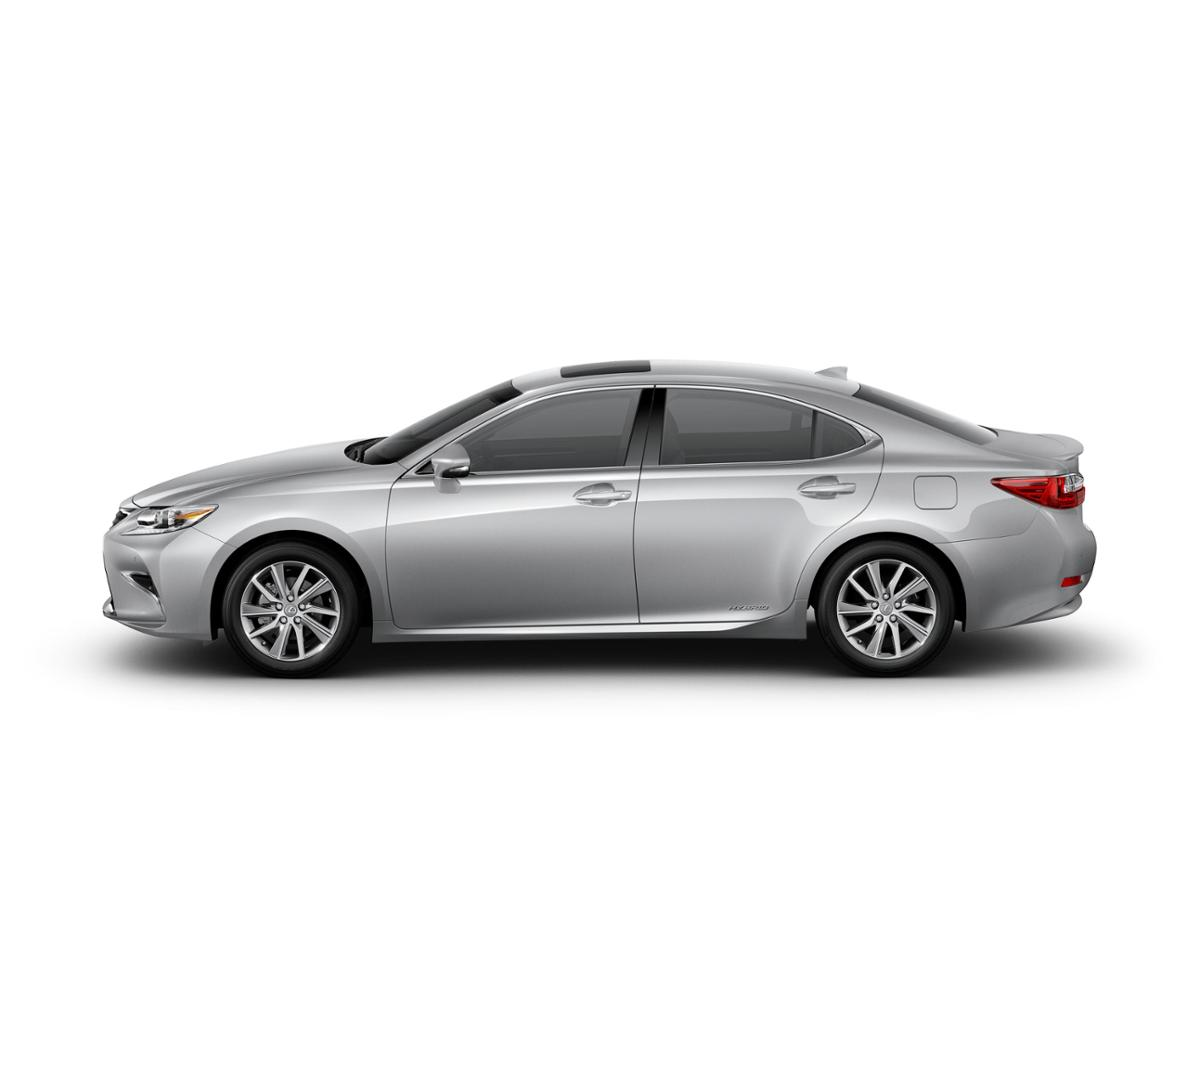 2018 Lexus ES 300h Vehicle Photo in Dallas, TX 75209